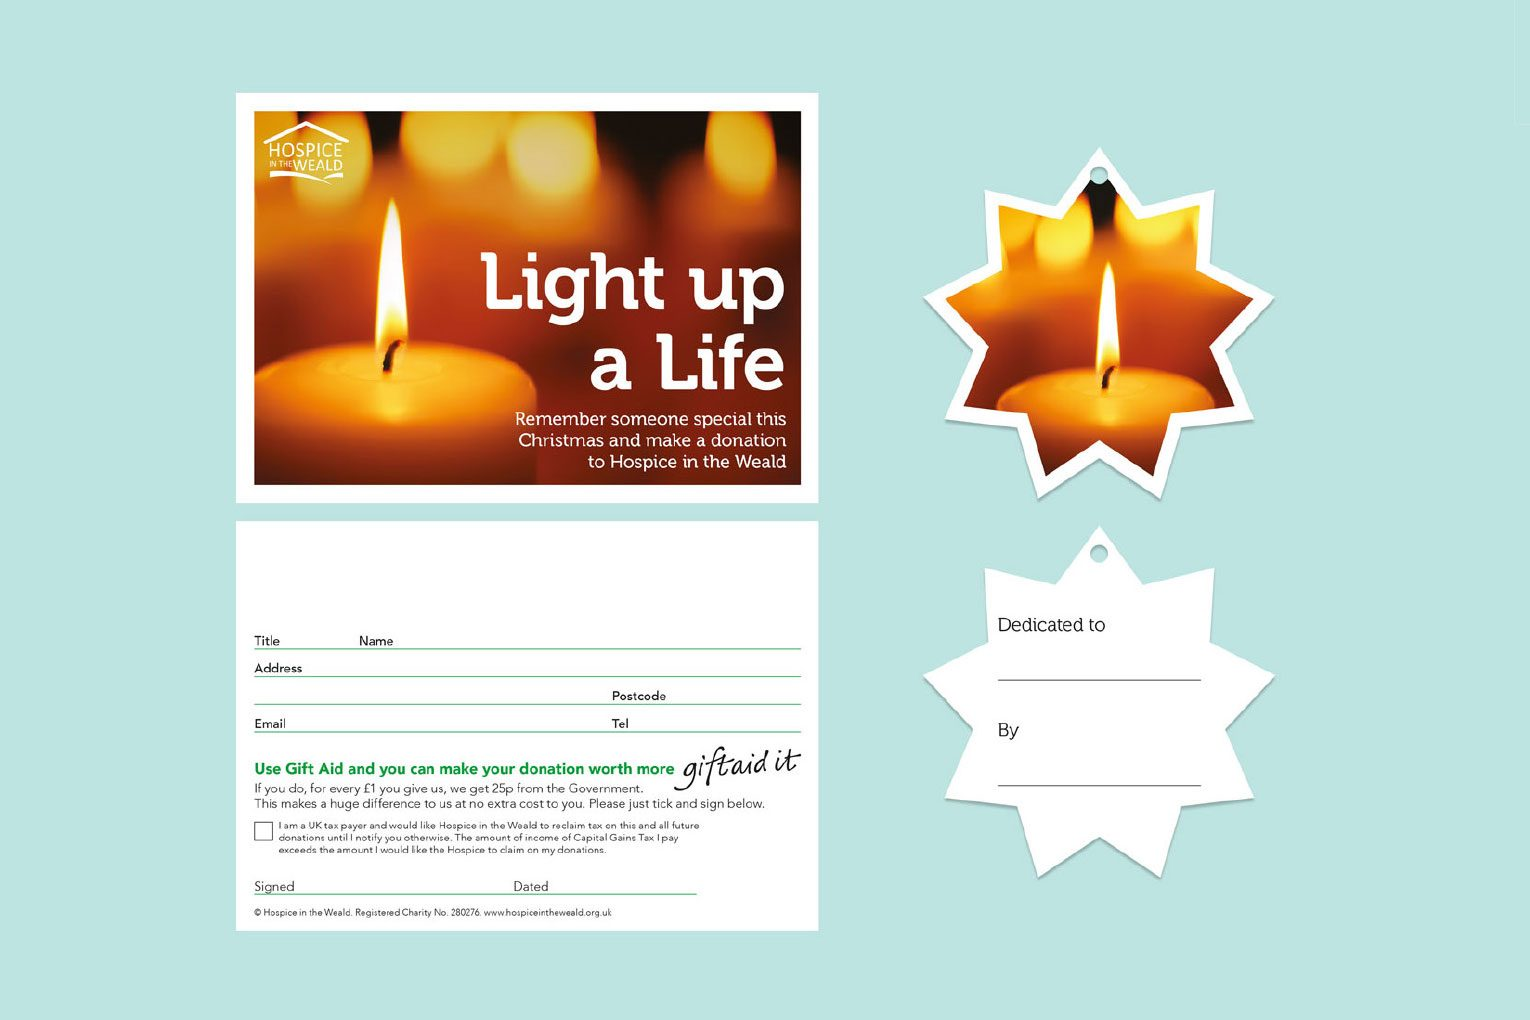 In memory gift aid postcard and dedication star for Light up a Life campaign